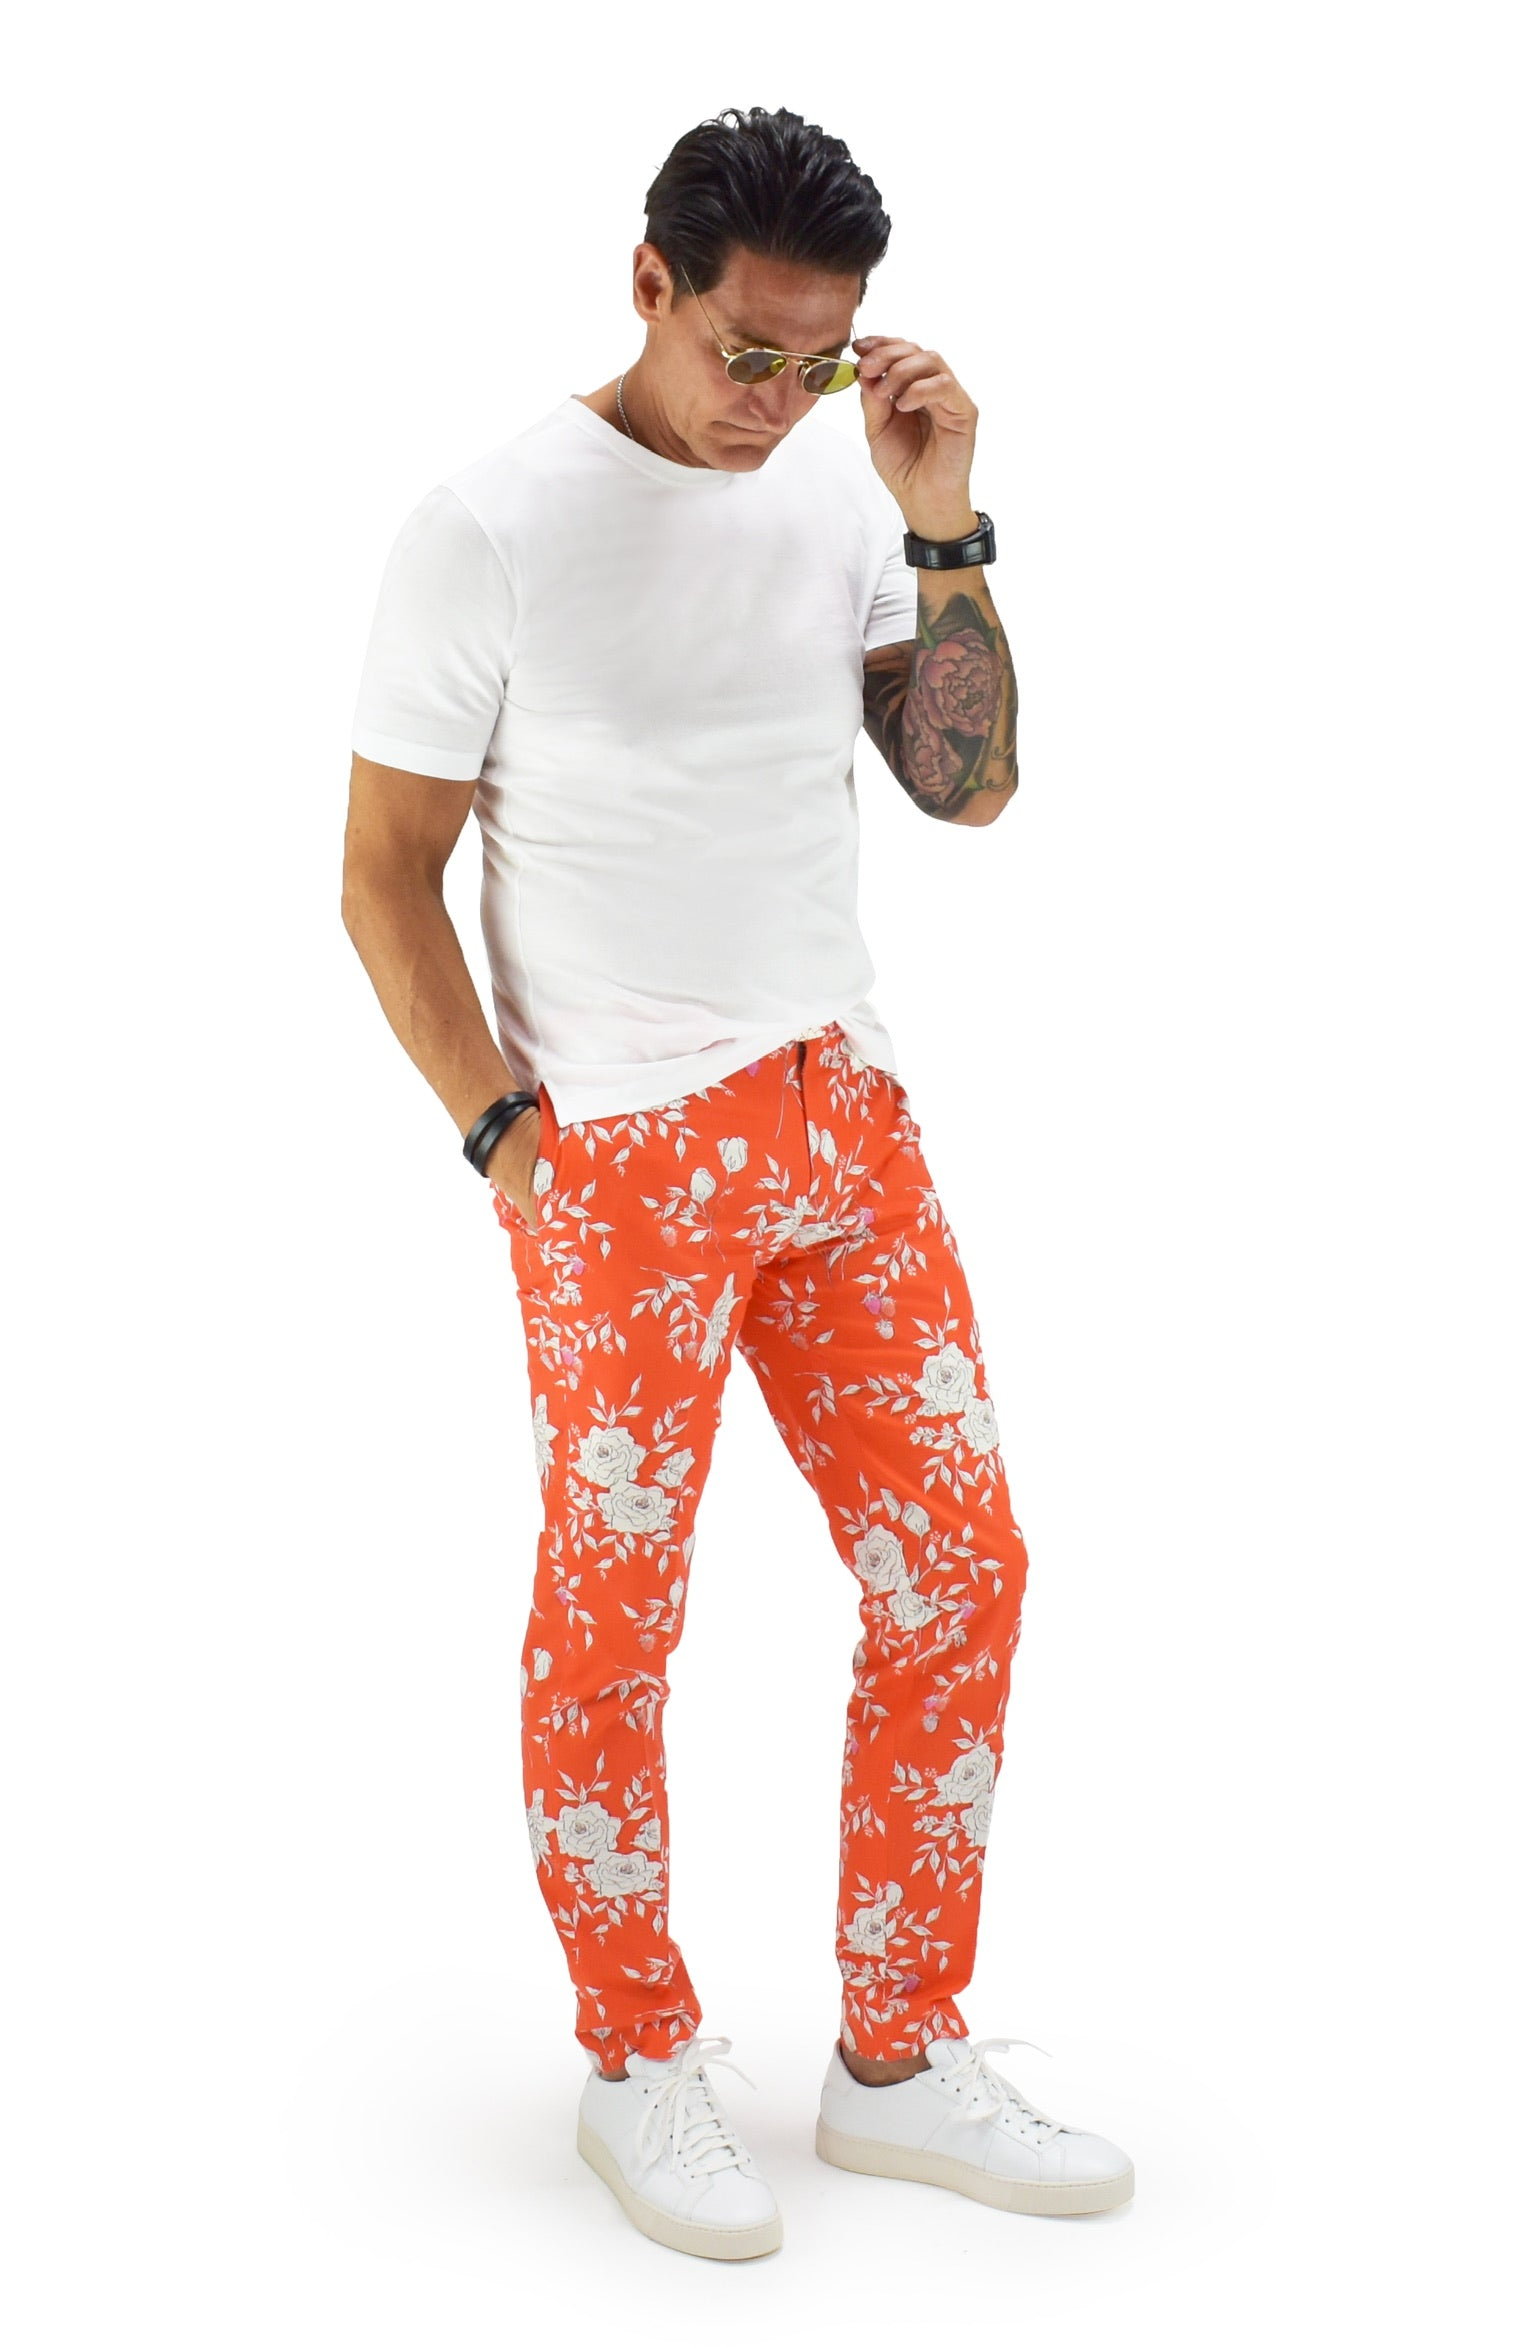 David August Slim Fit Tapered Orange with White Floral Print Cotton Trousers - Cut-to-Order